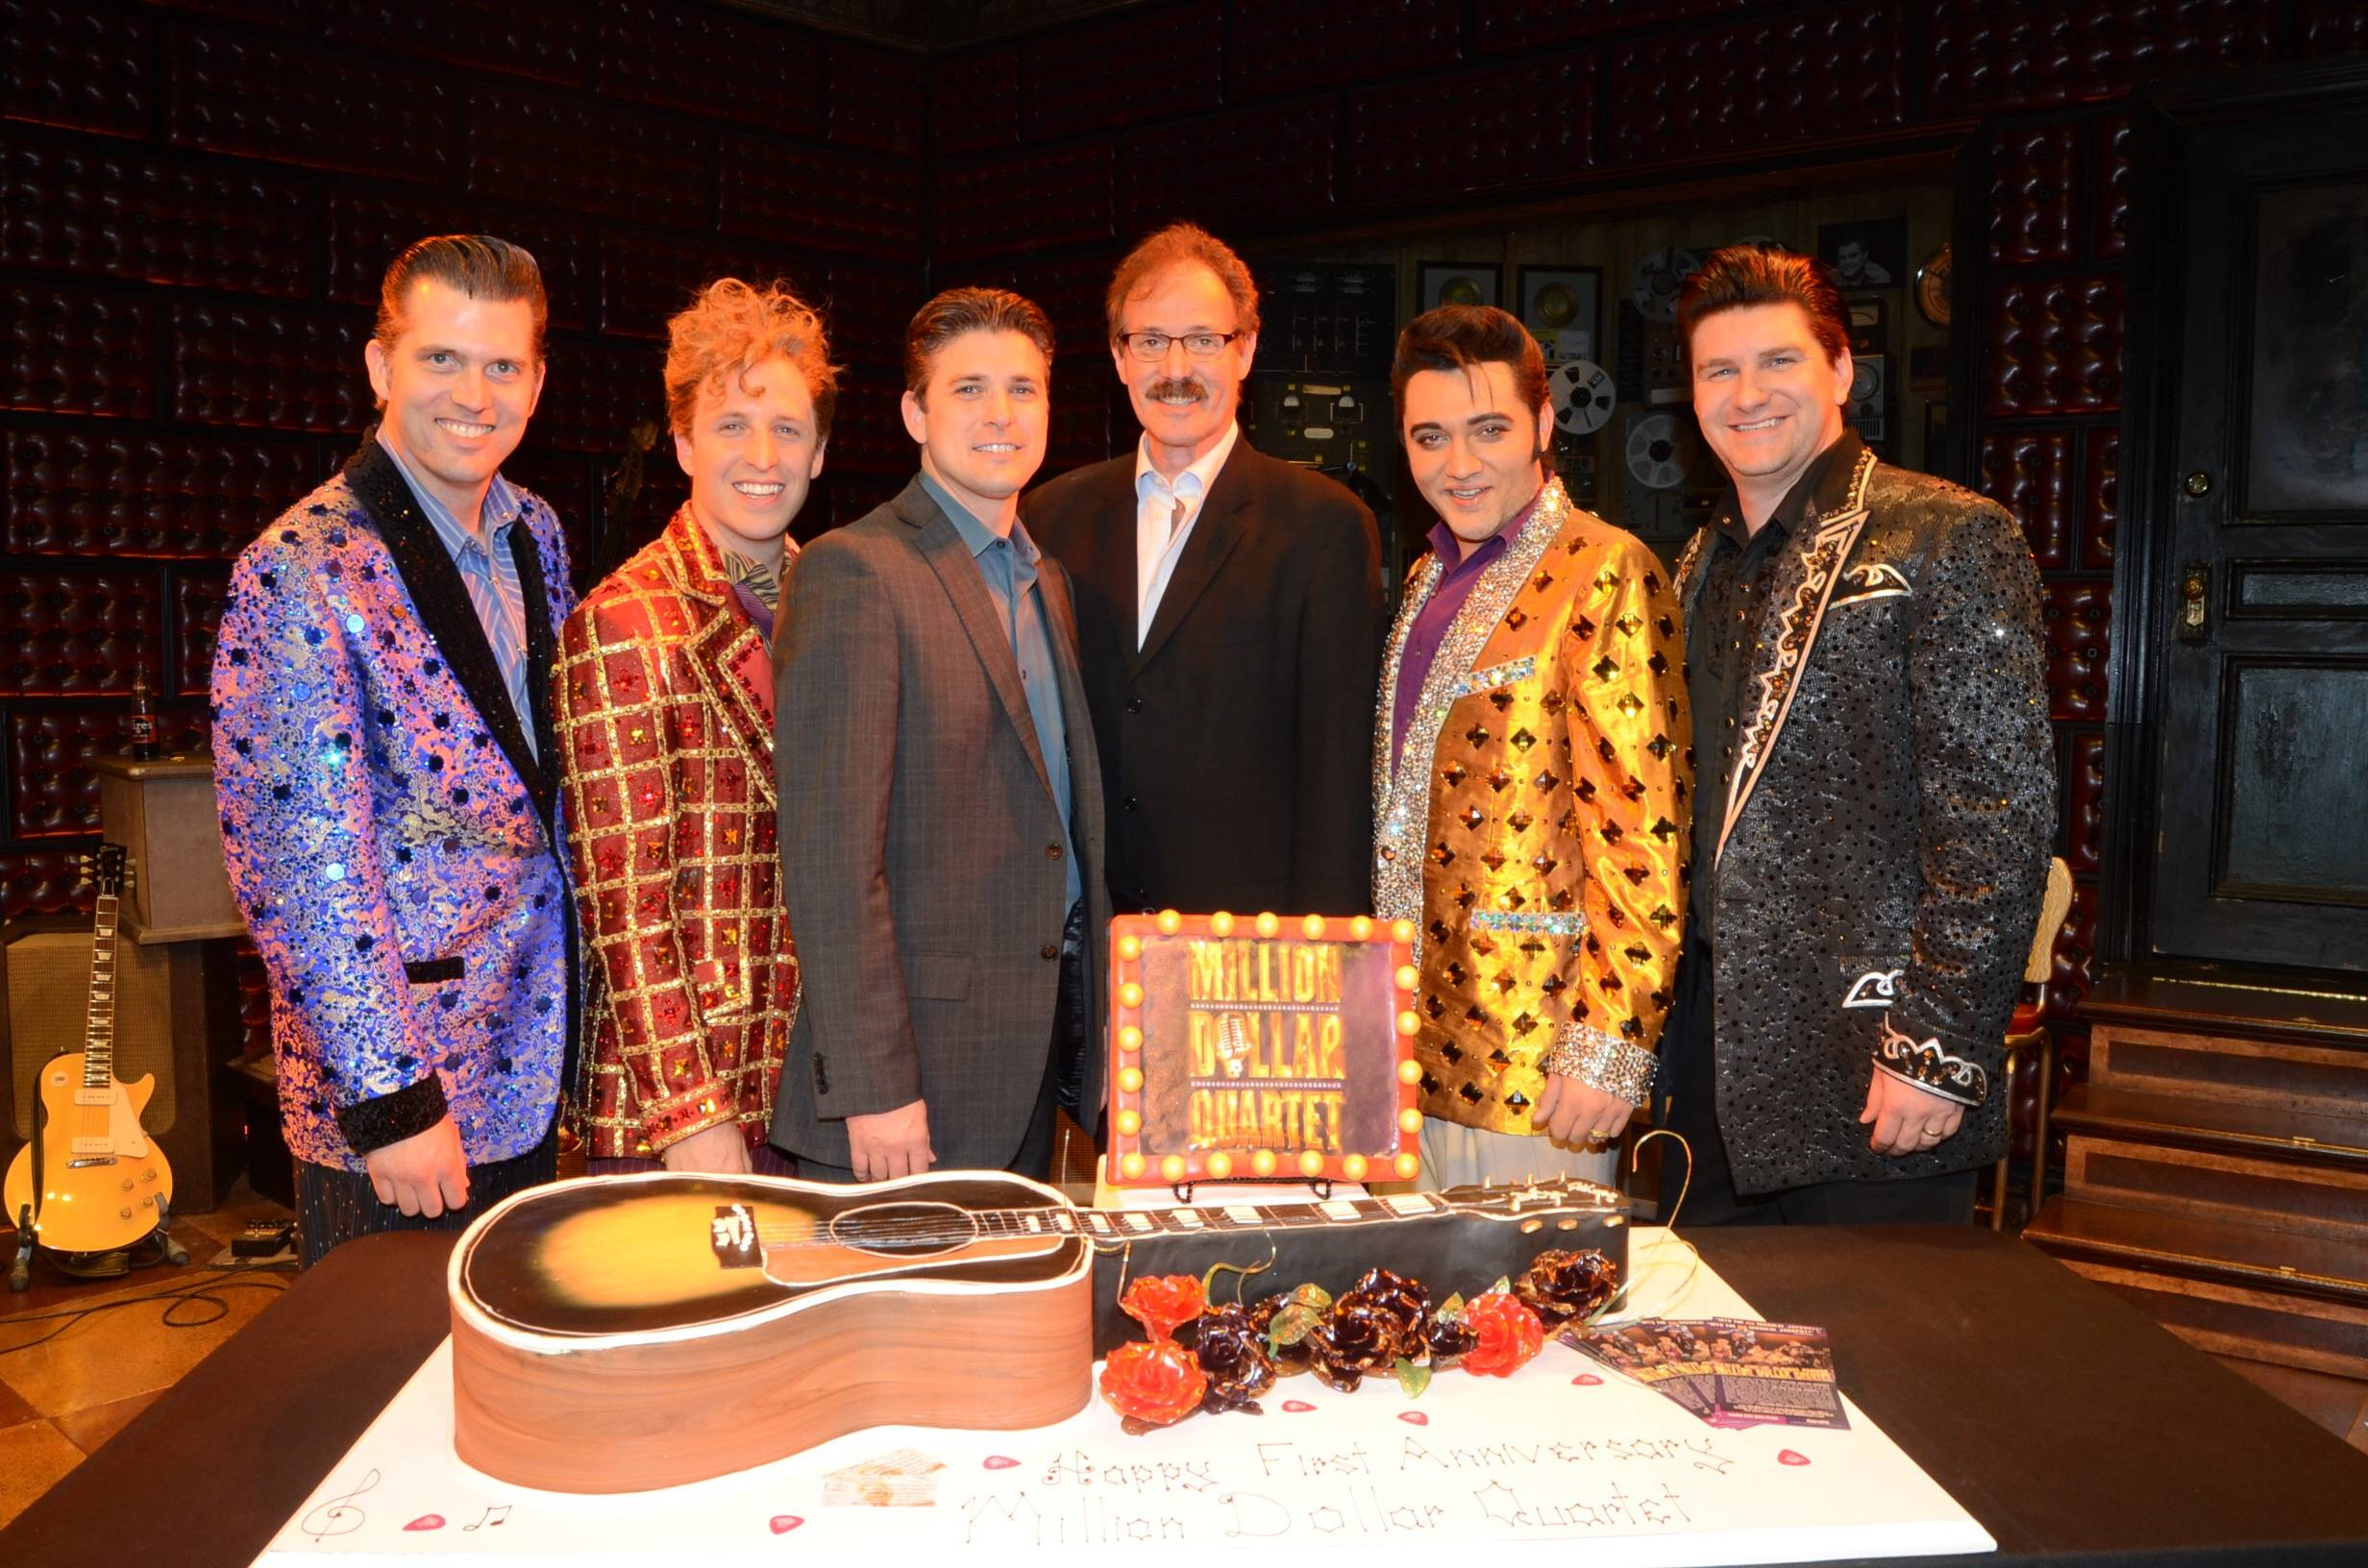 Cast of Million Dollar Quartet Las Vegas with Caesars Entertainment Executive Damian Costa and Ted Rawlins 3; First Anniversary 2.19.14 ©Caesars Entertainment